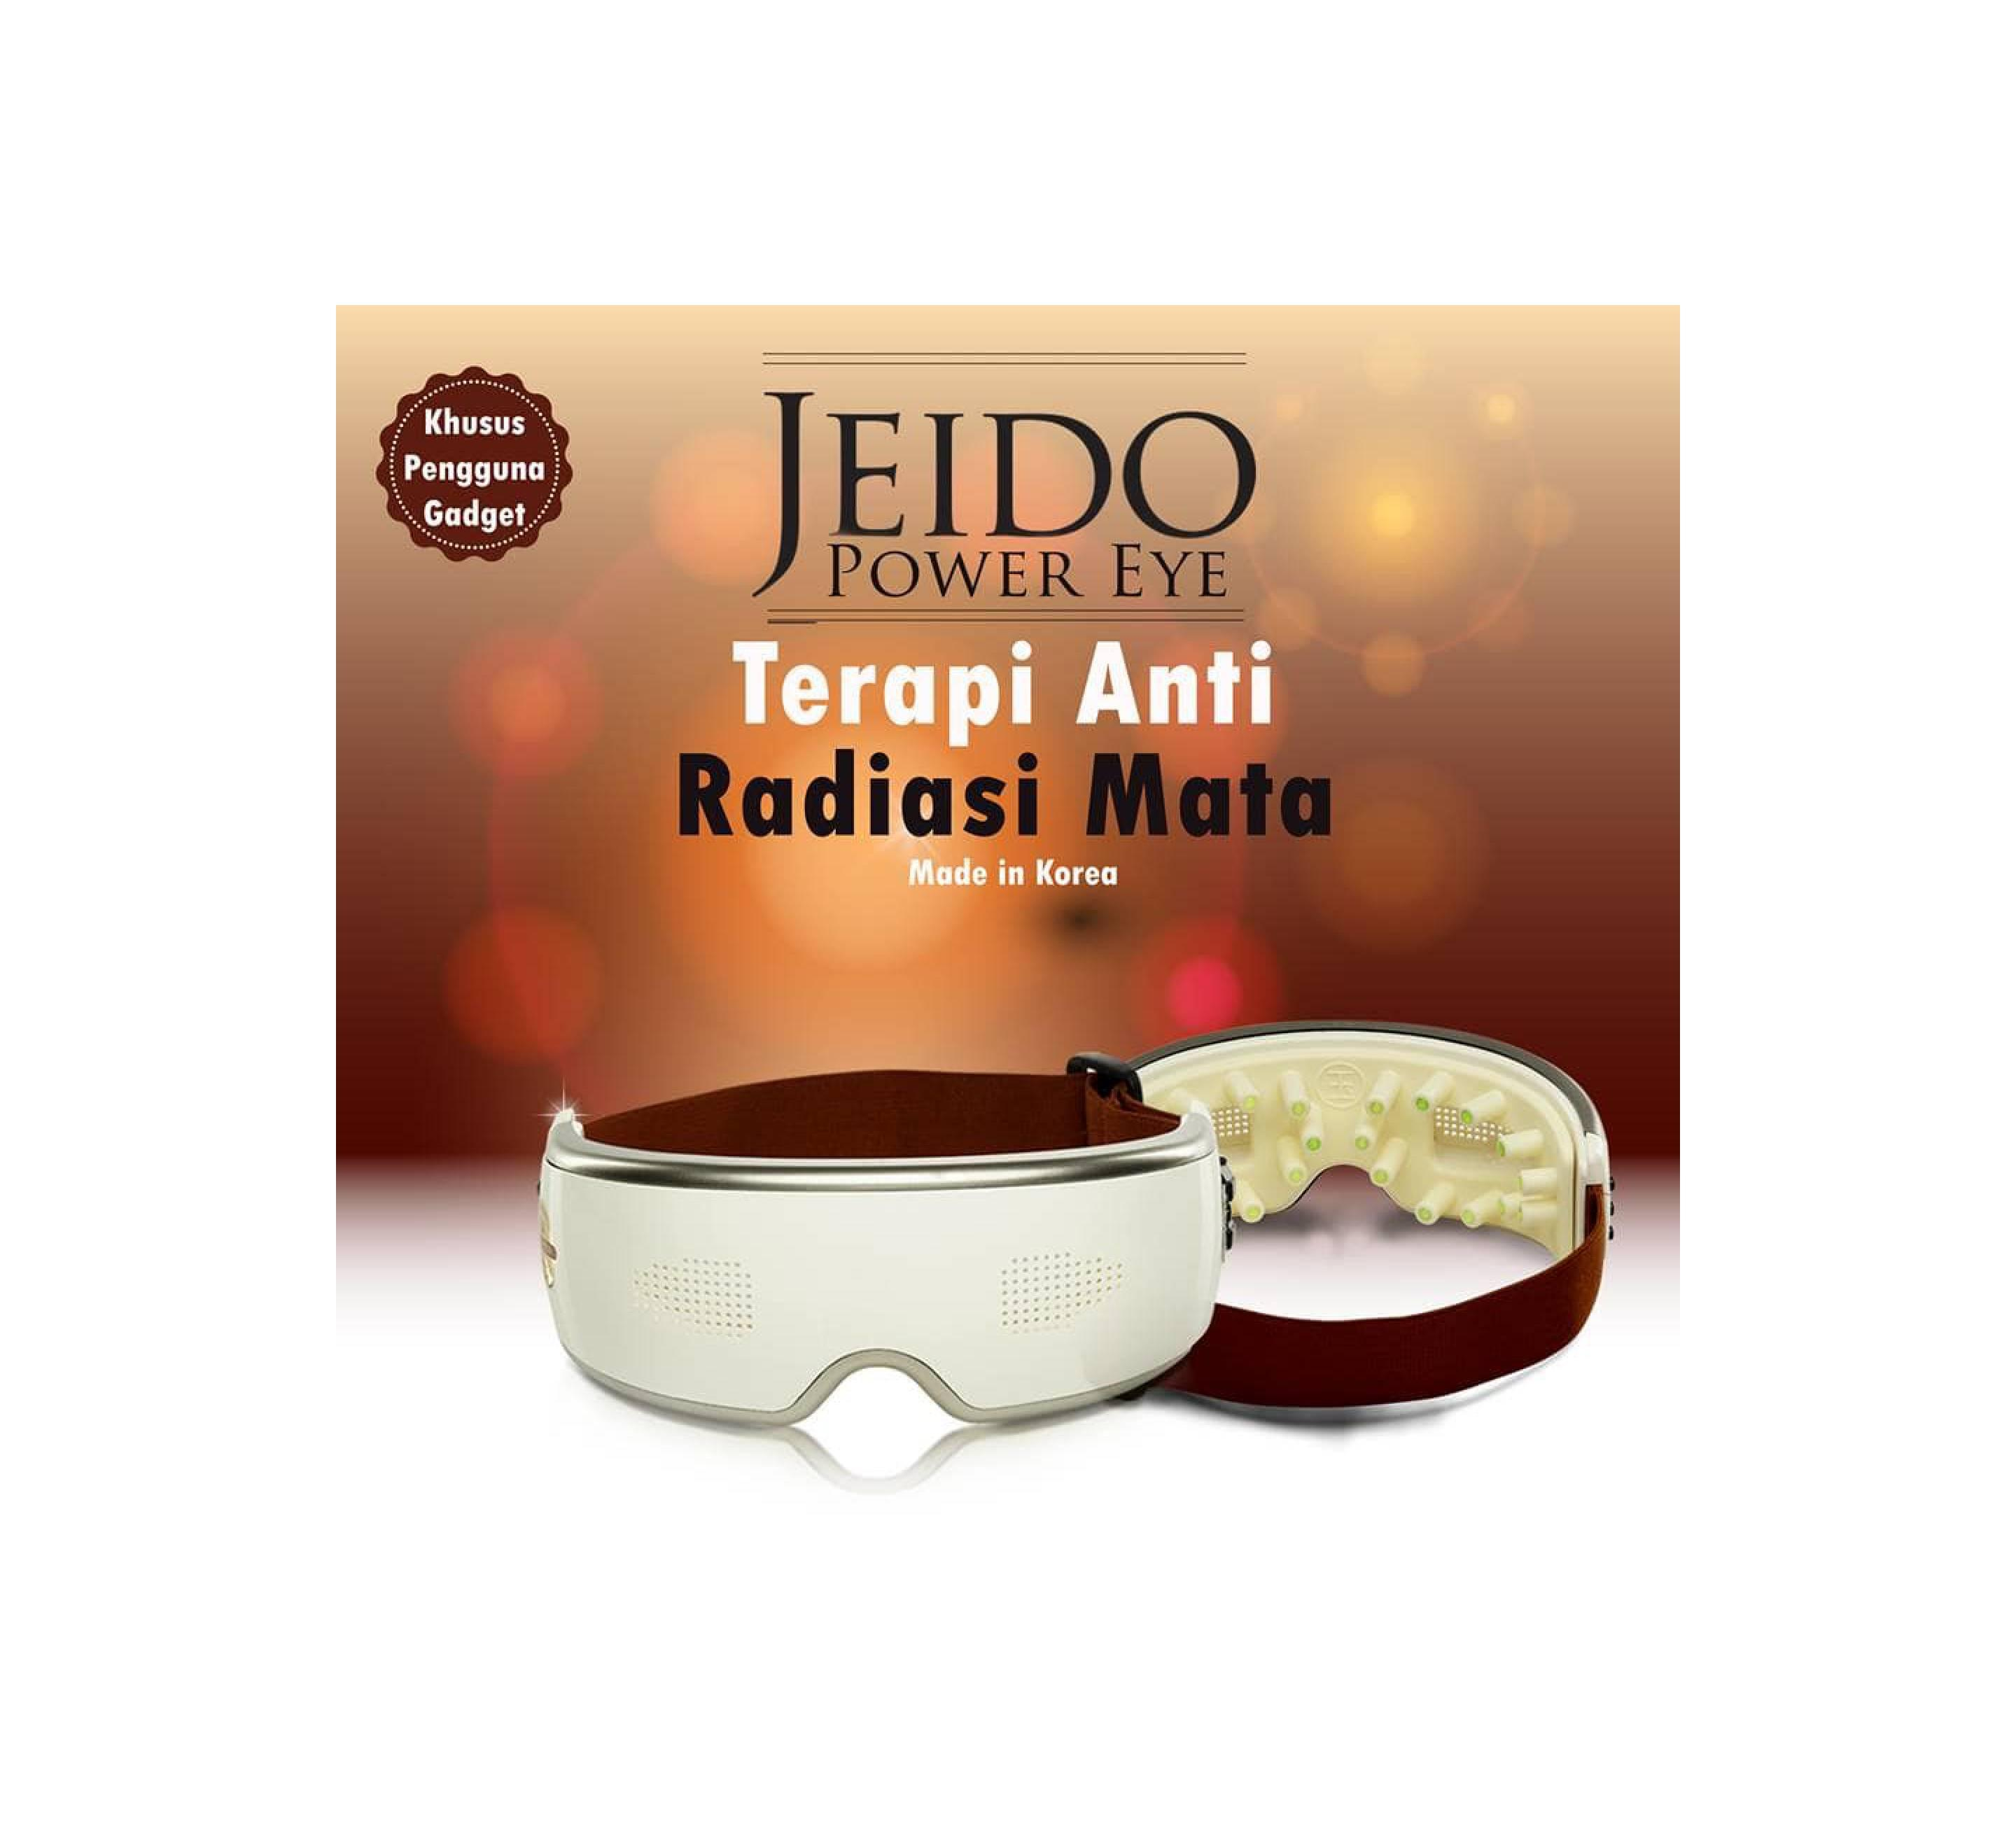 Jeido Power Eye Original Korea - Terapi Anti Radiasi Mata